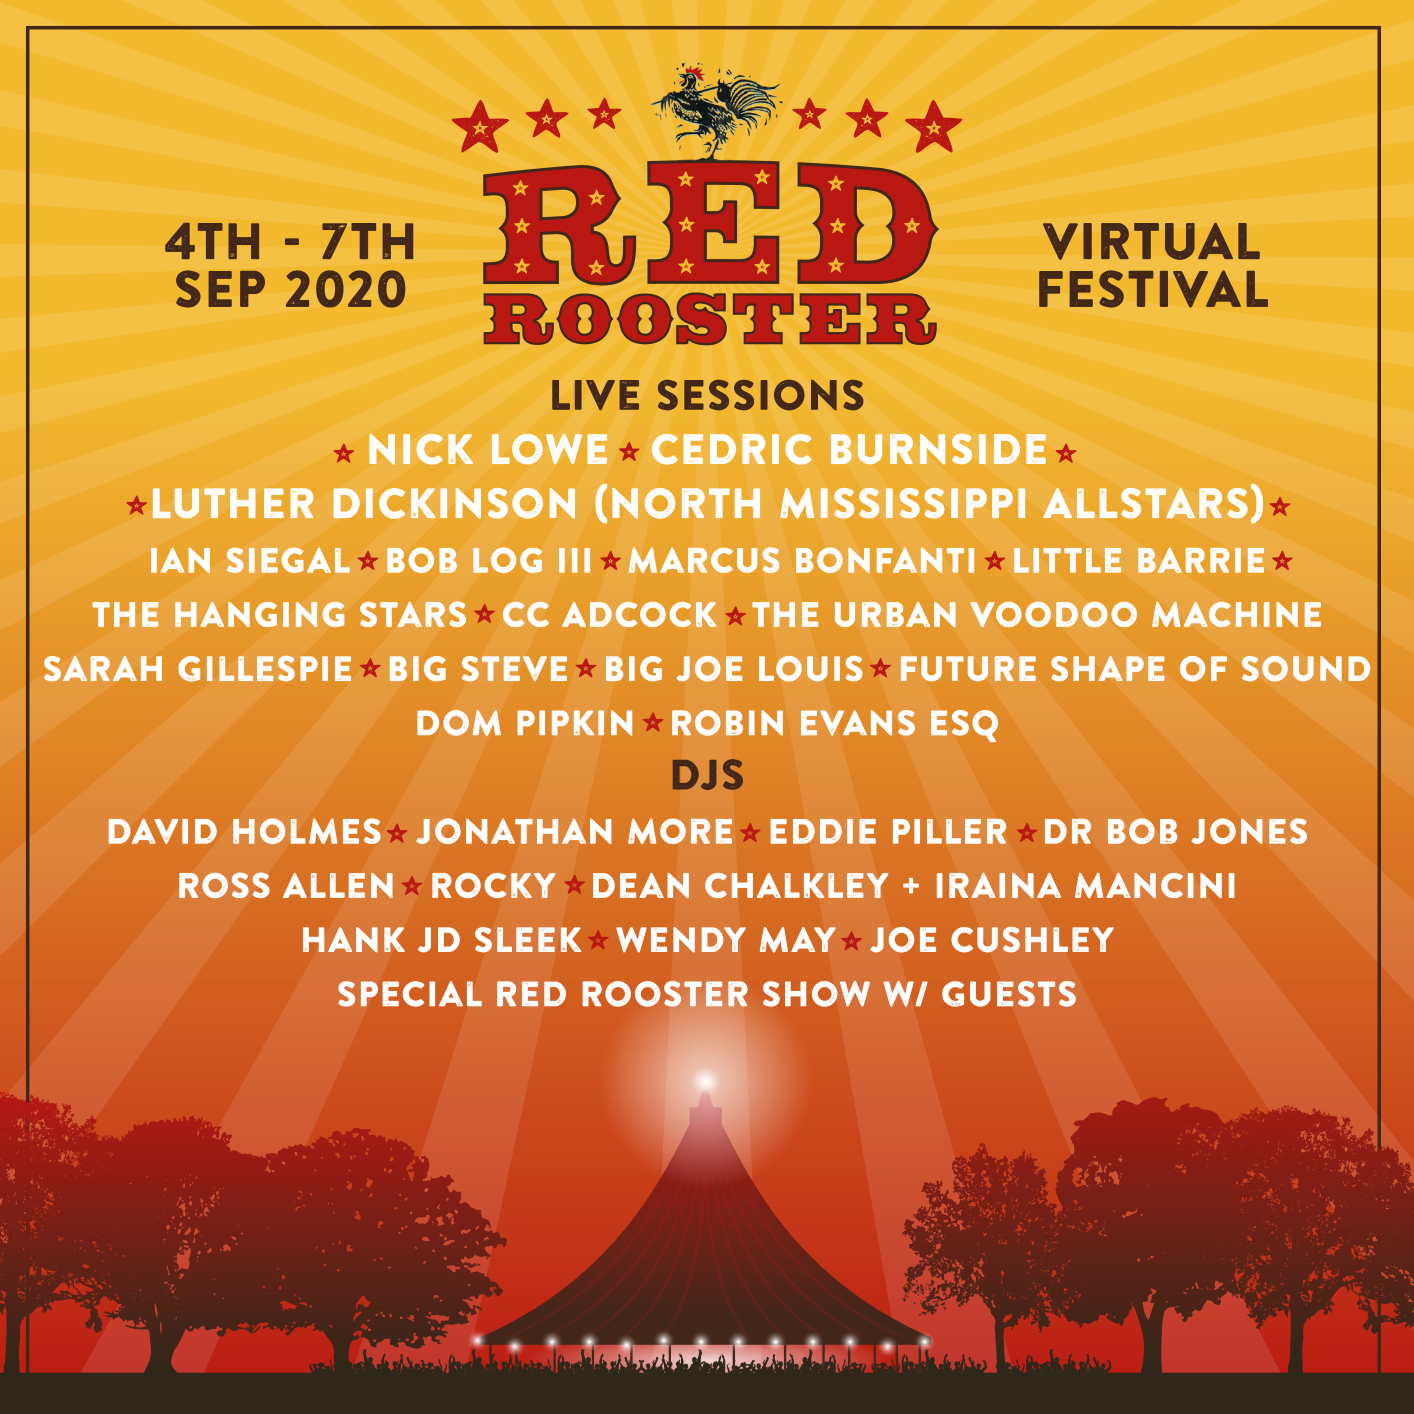 Red Rooster Virtual Festival Poster (amended v2) copy (002)